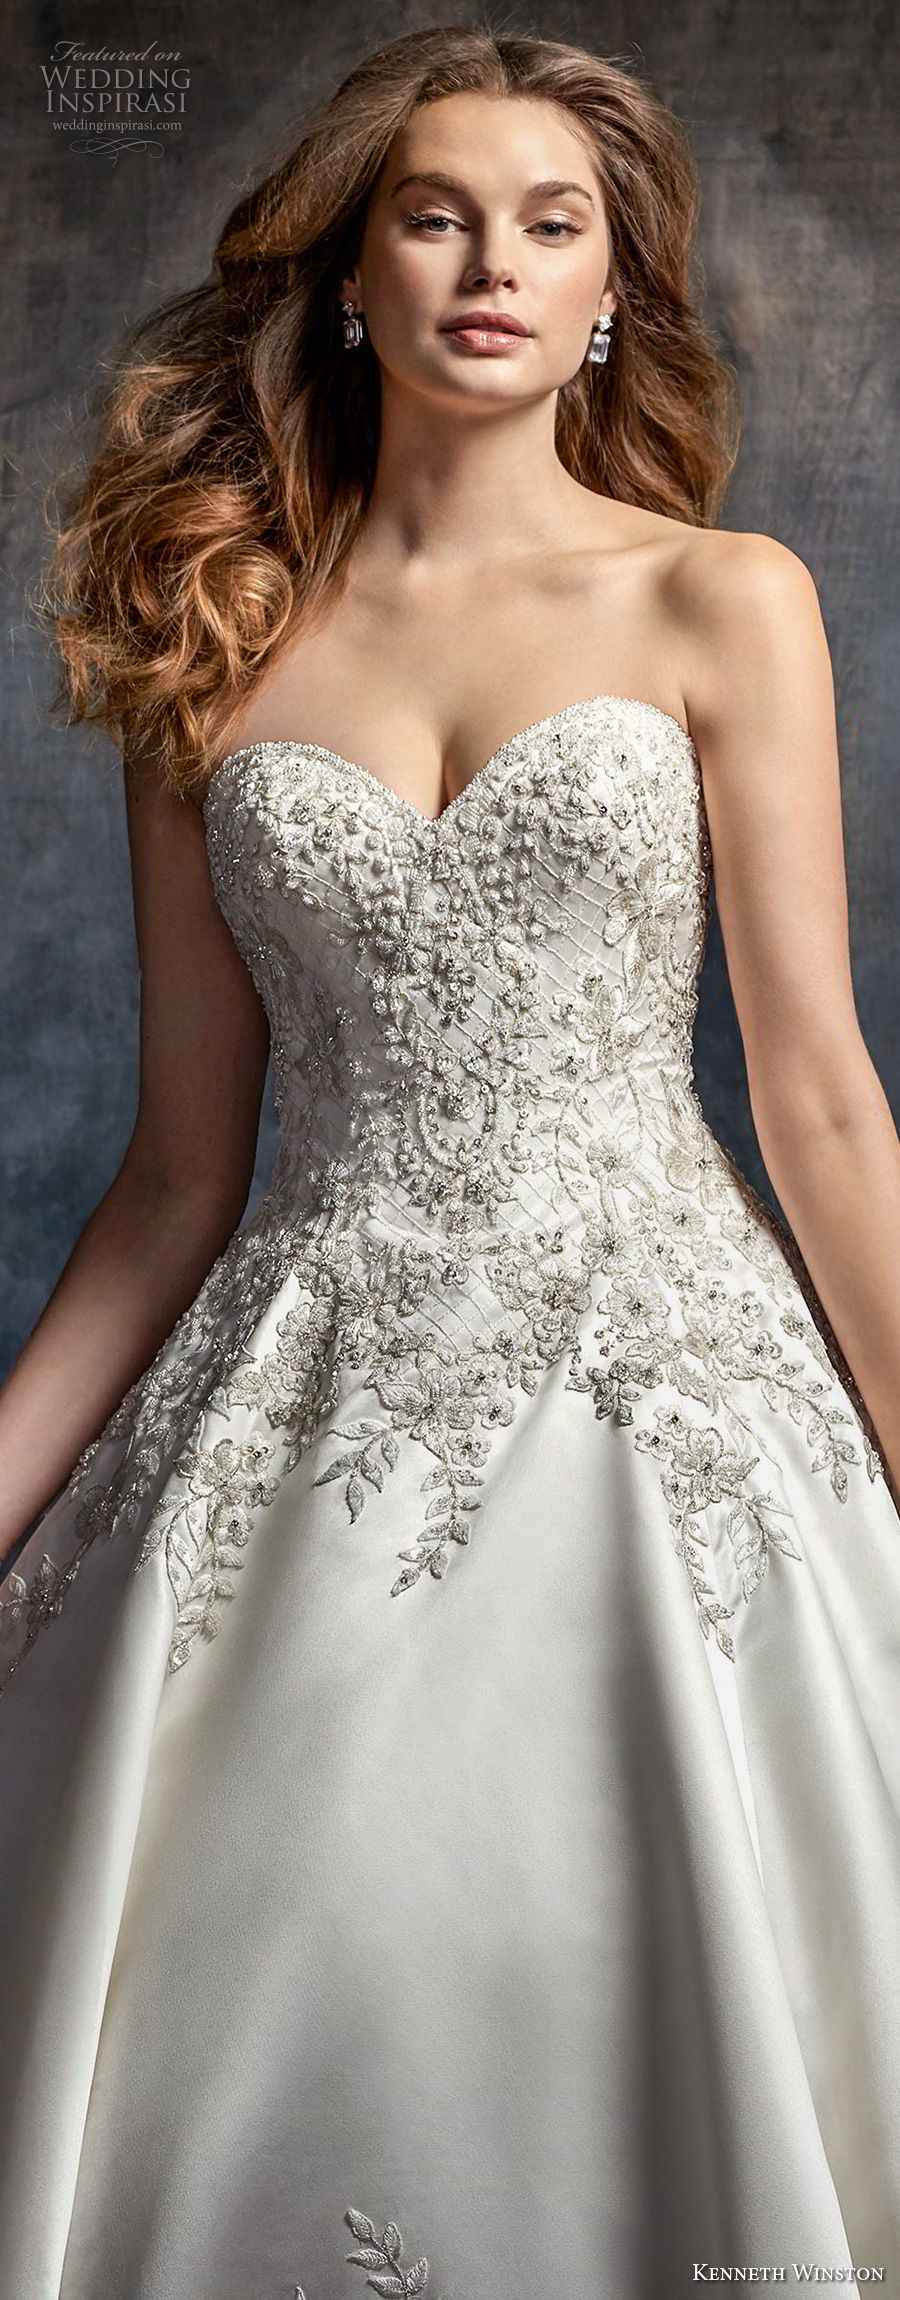 kenneth winston fall 2017 bridal strapless sweetheart neckline heavily embellished beaded bodice satin skirt princess ball gown wedding dress chapel train (49) zv